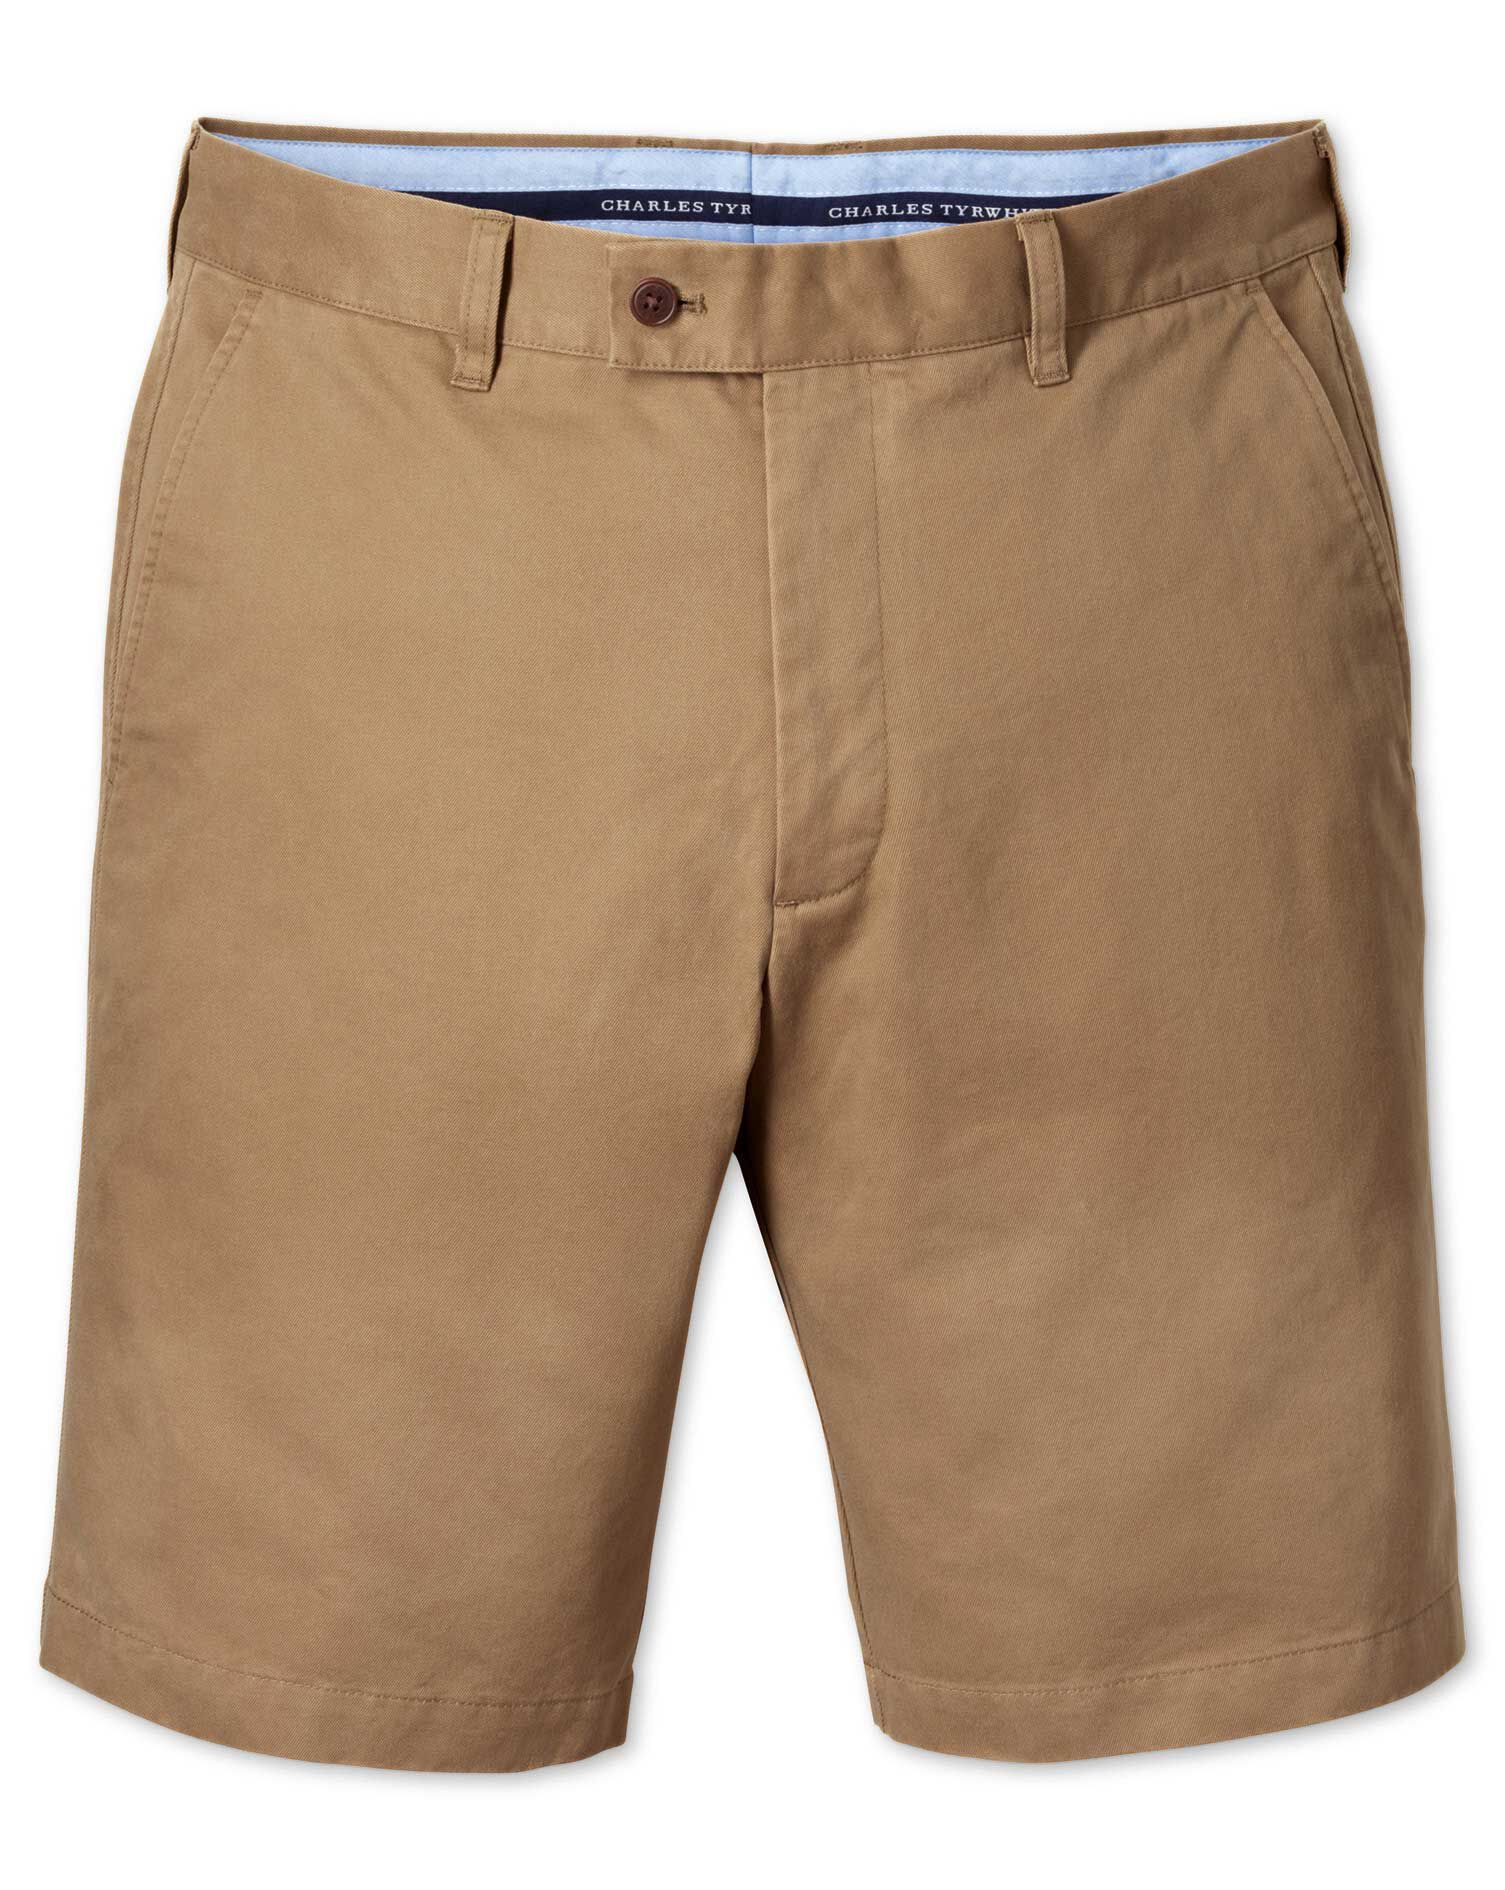 Tan Slim Fit Chino Cotton Shorts Size 42 by Charles Tyrwhitt